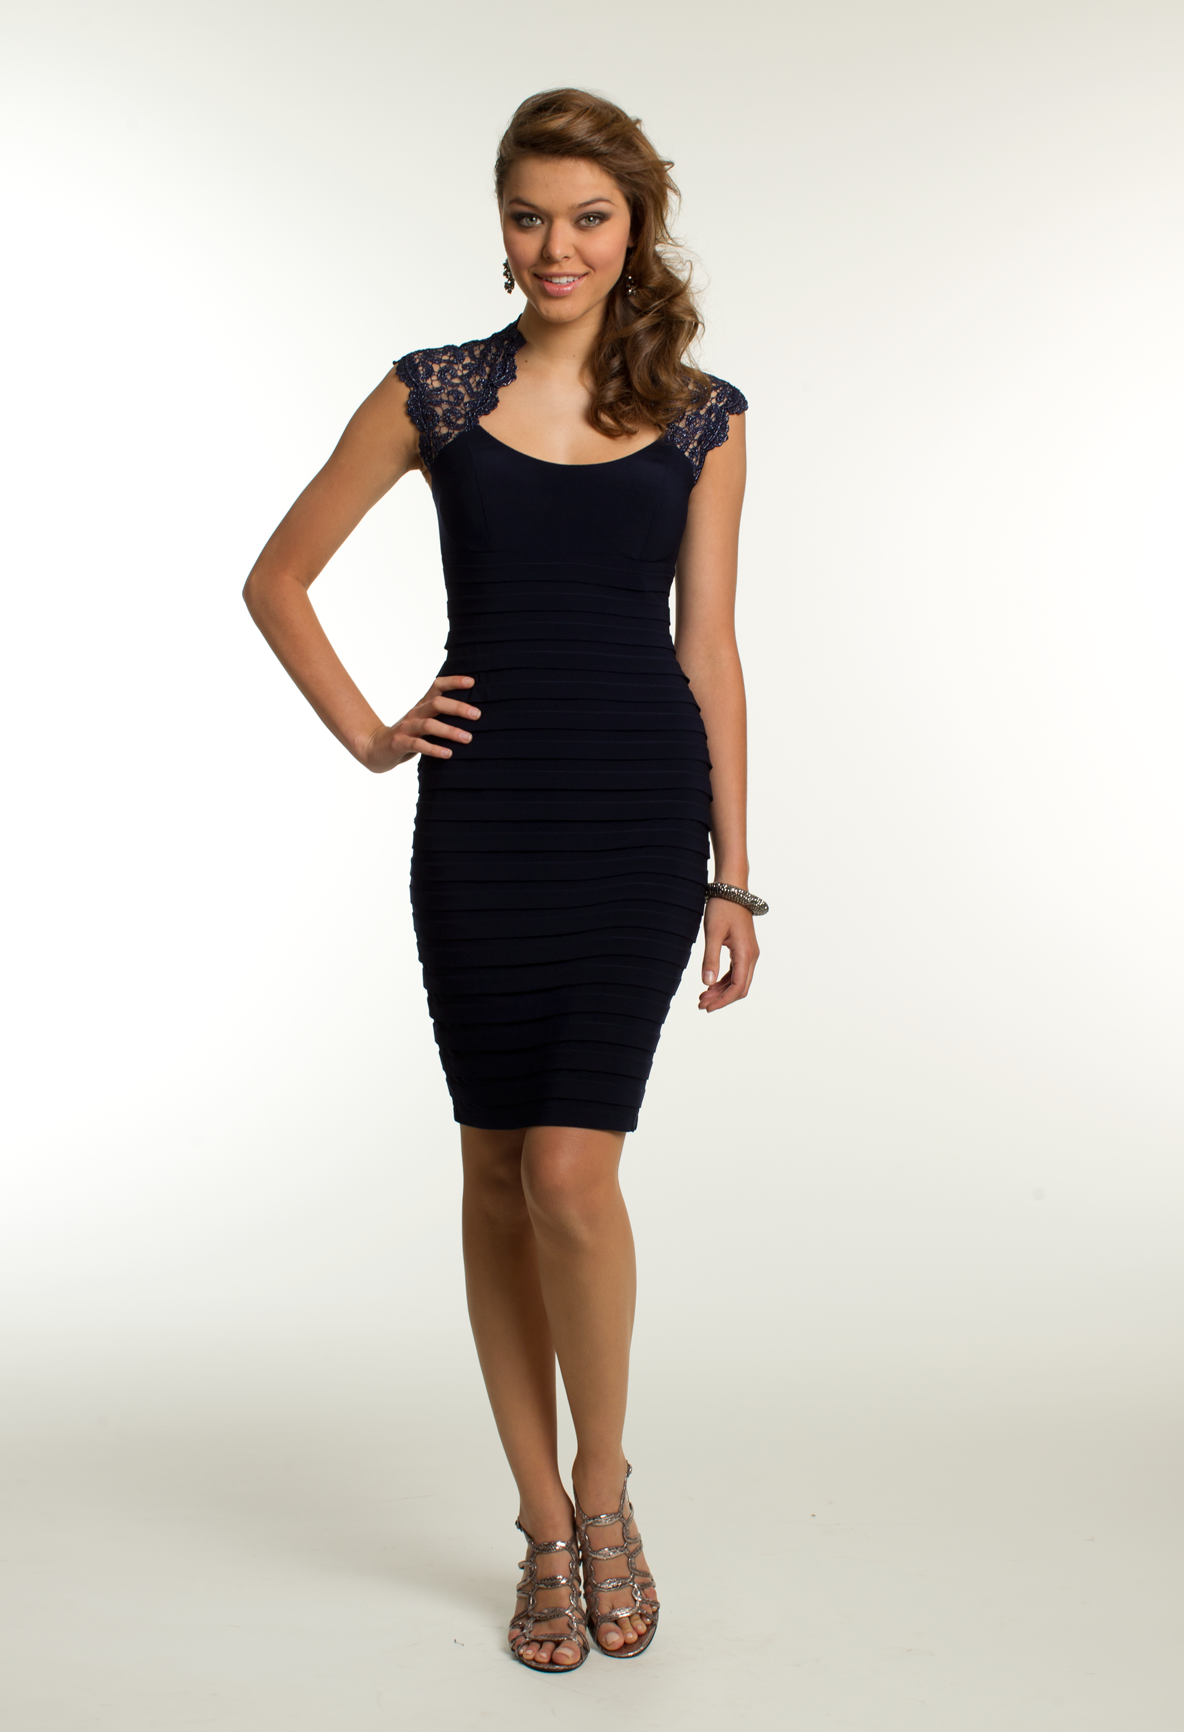 Short Metallic Lace Dress by Camille La Vie & Group USA | IF WE TOOK ...